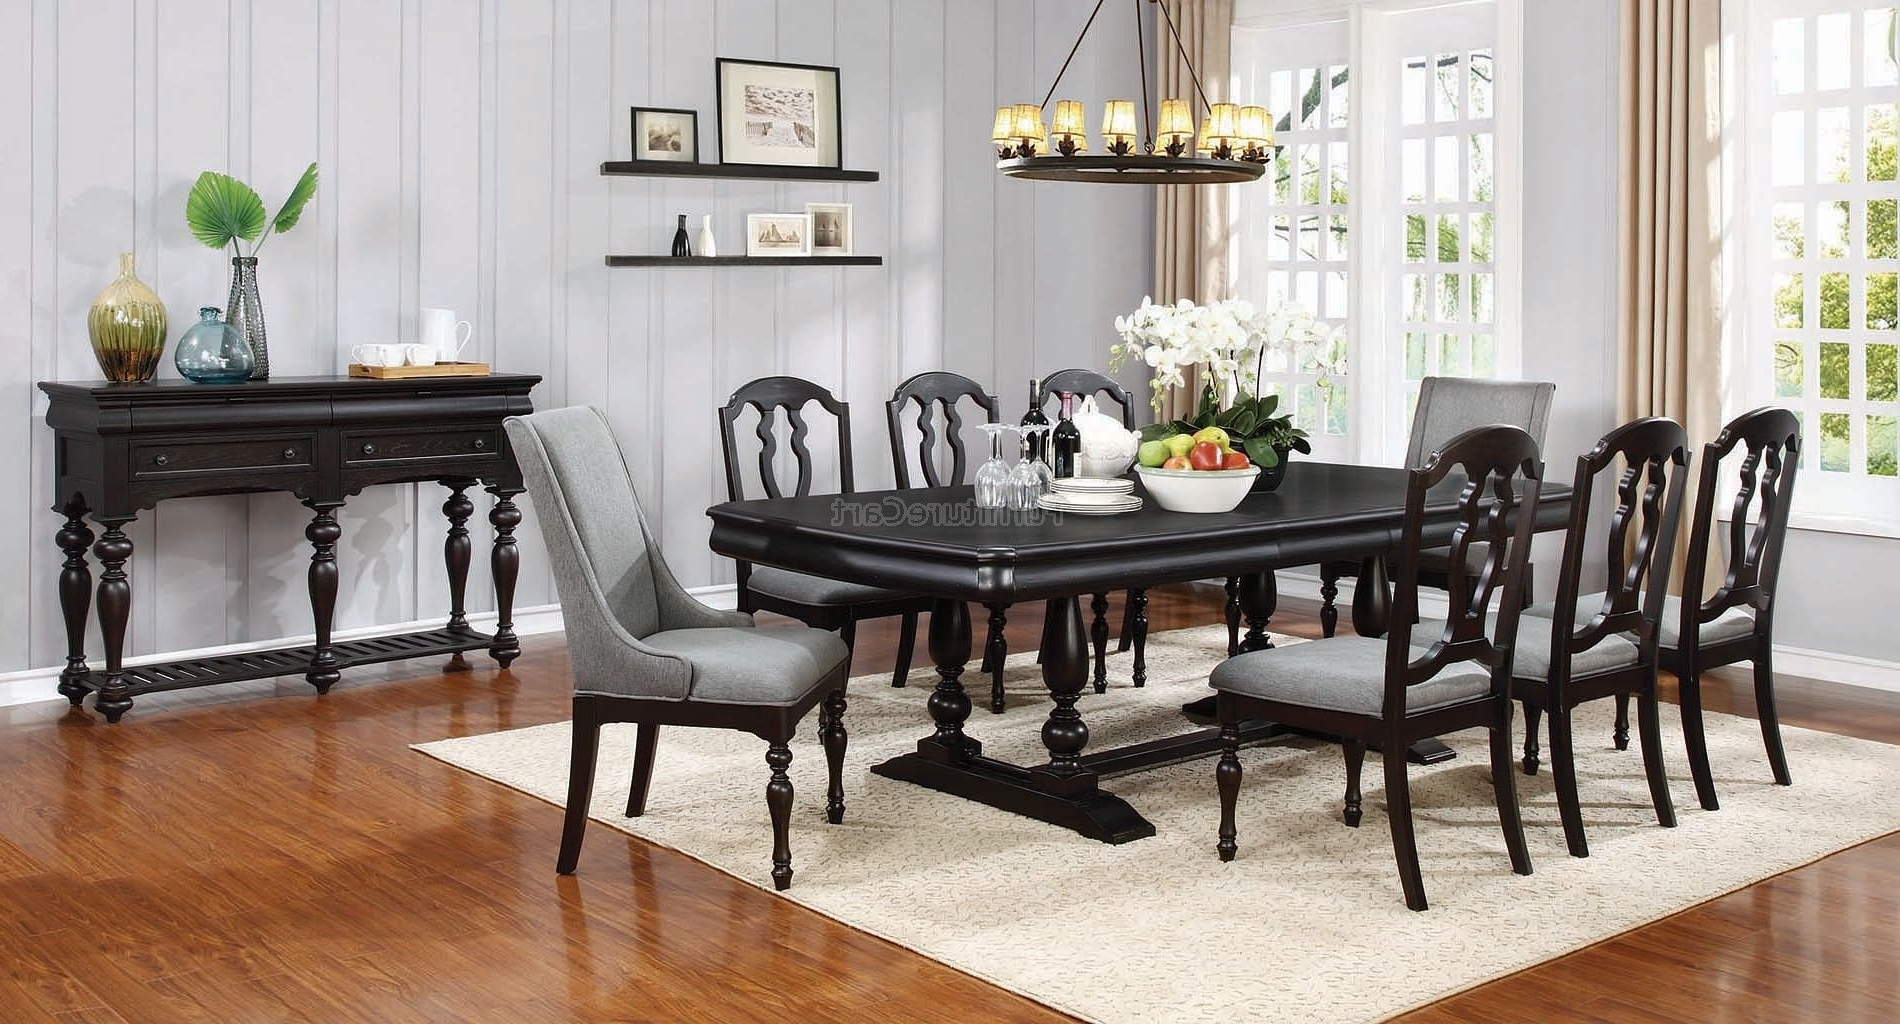 Leon Dining Room Set (View 2 of 25)